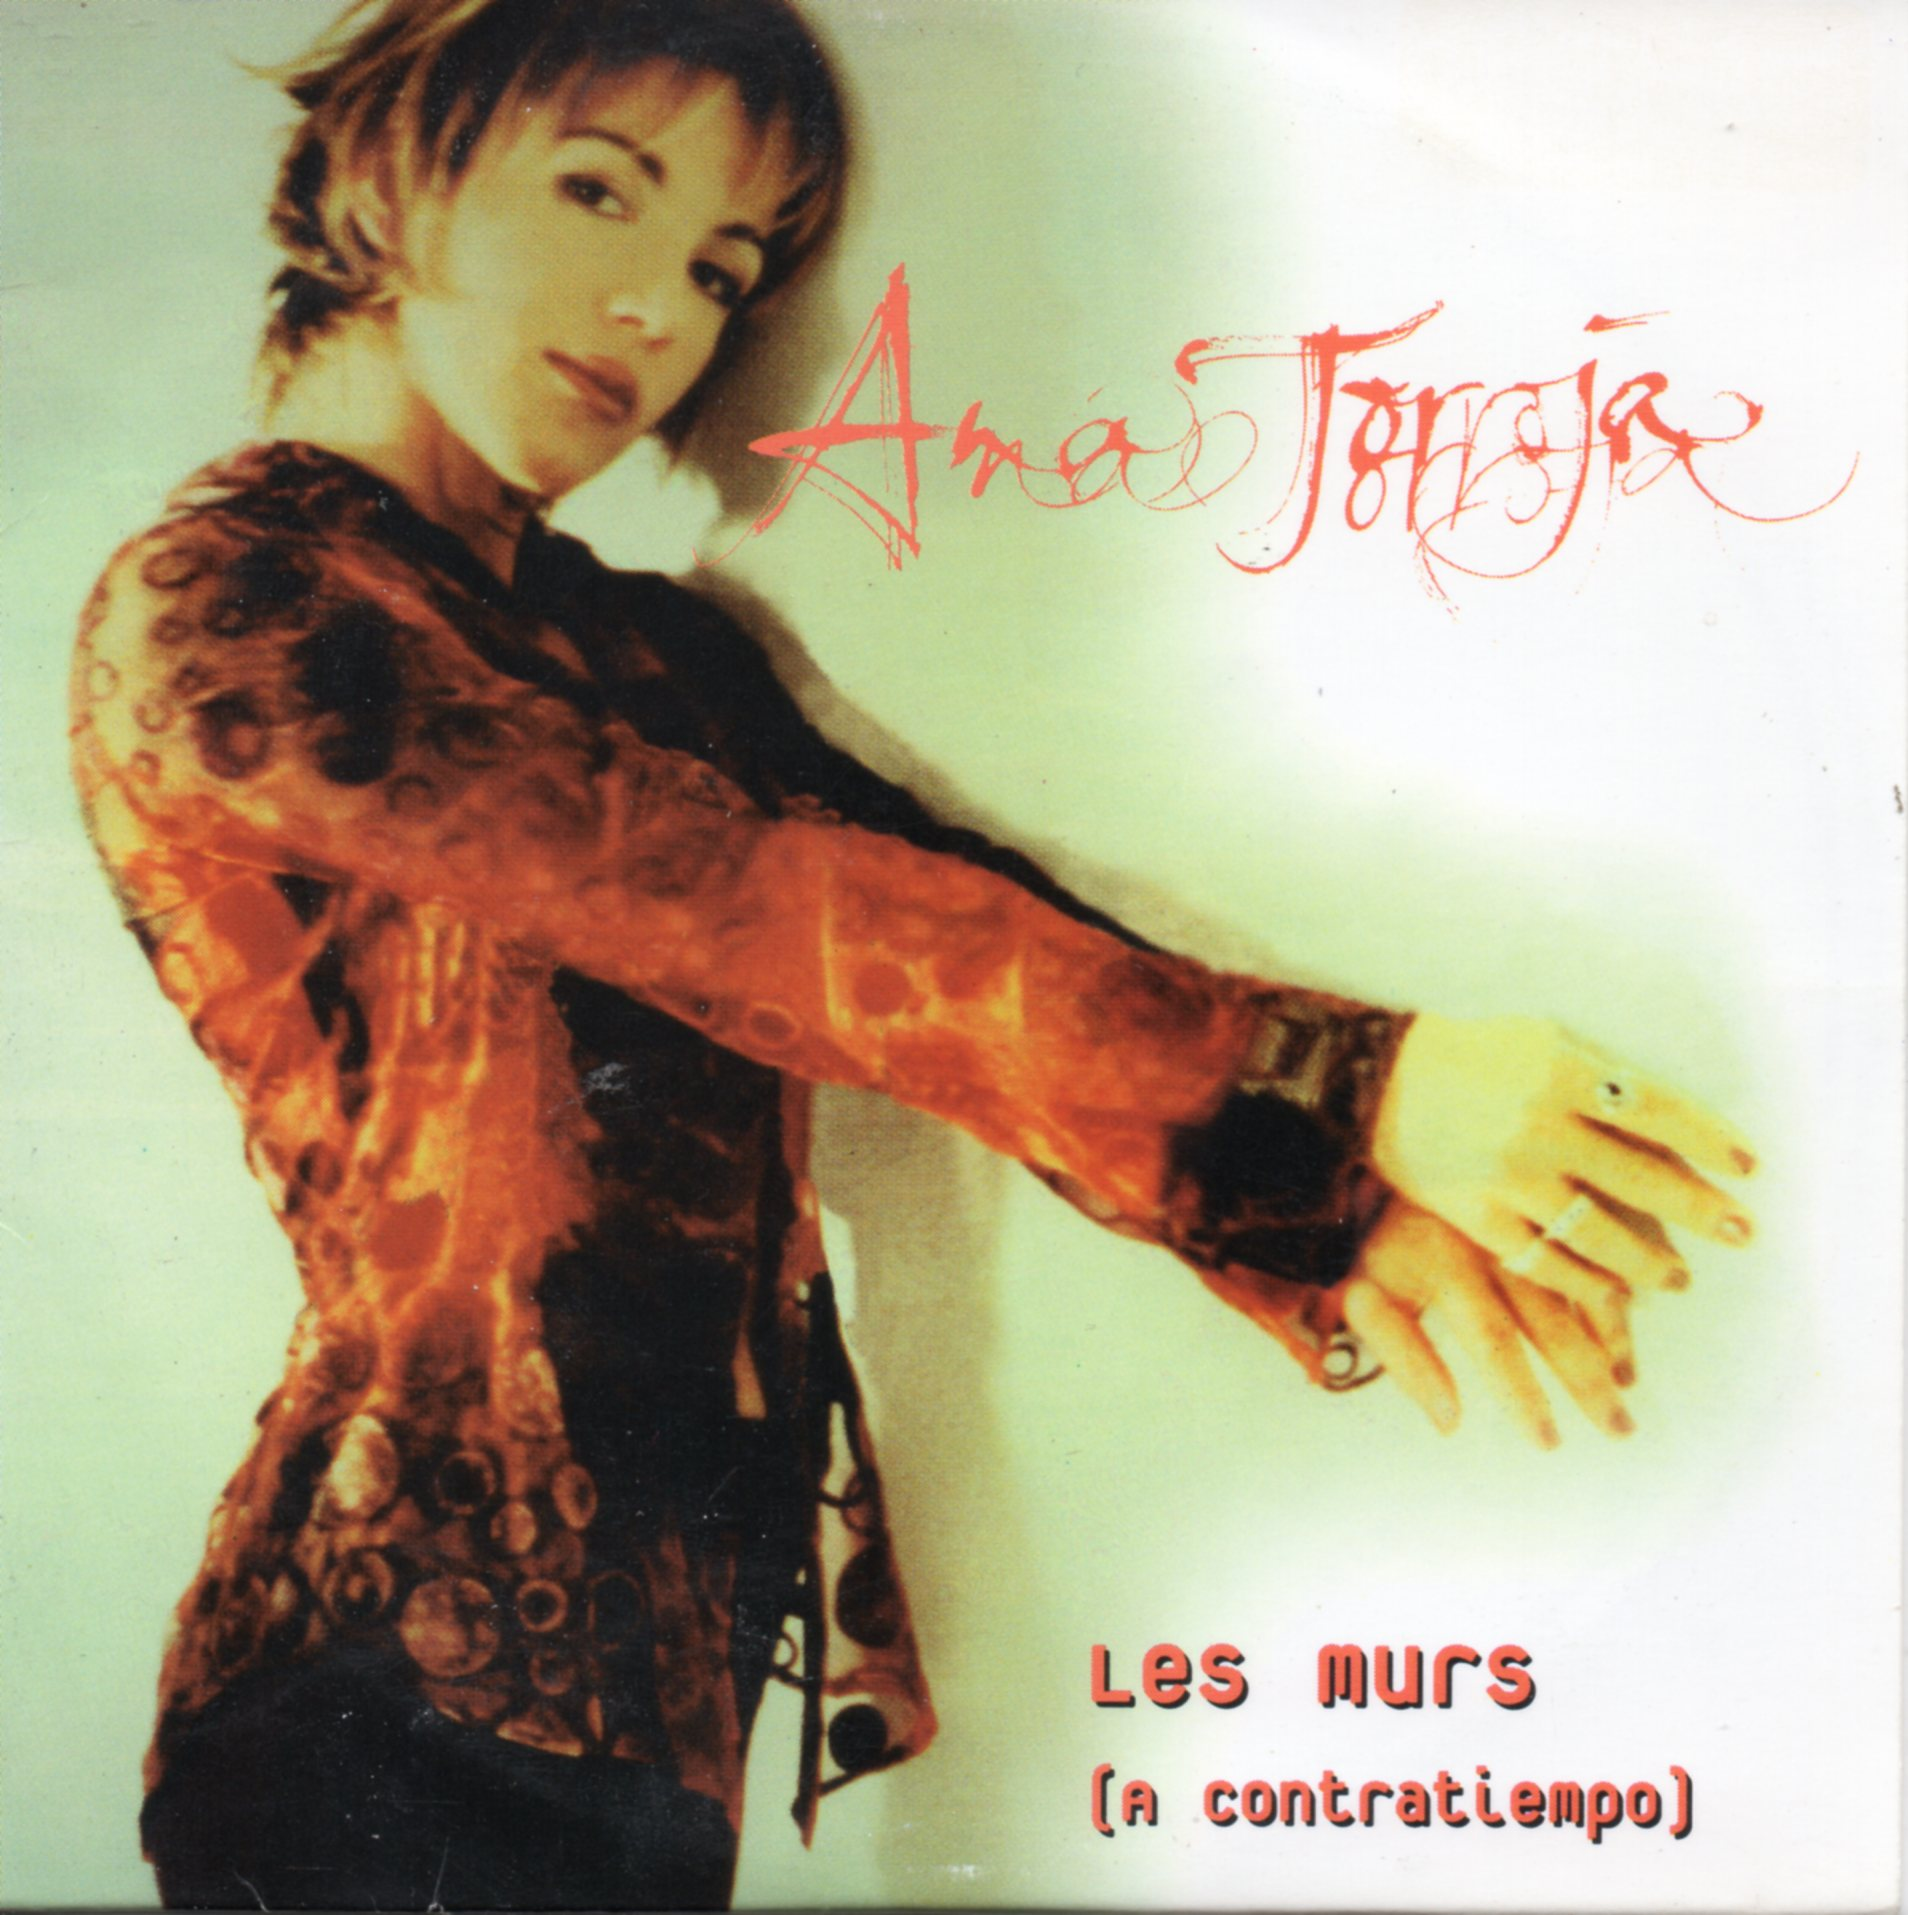 ANA TORROJA - MECANO - FRANÇOISE HARDY - Les murs 2-track CARD SLEEVE - CD single